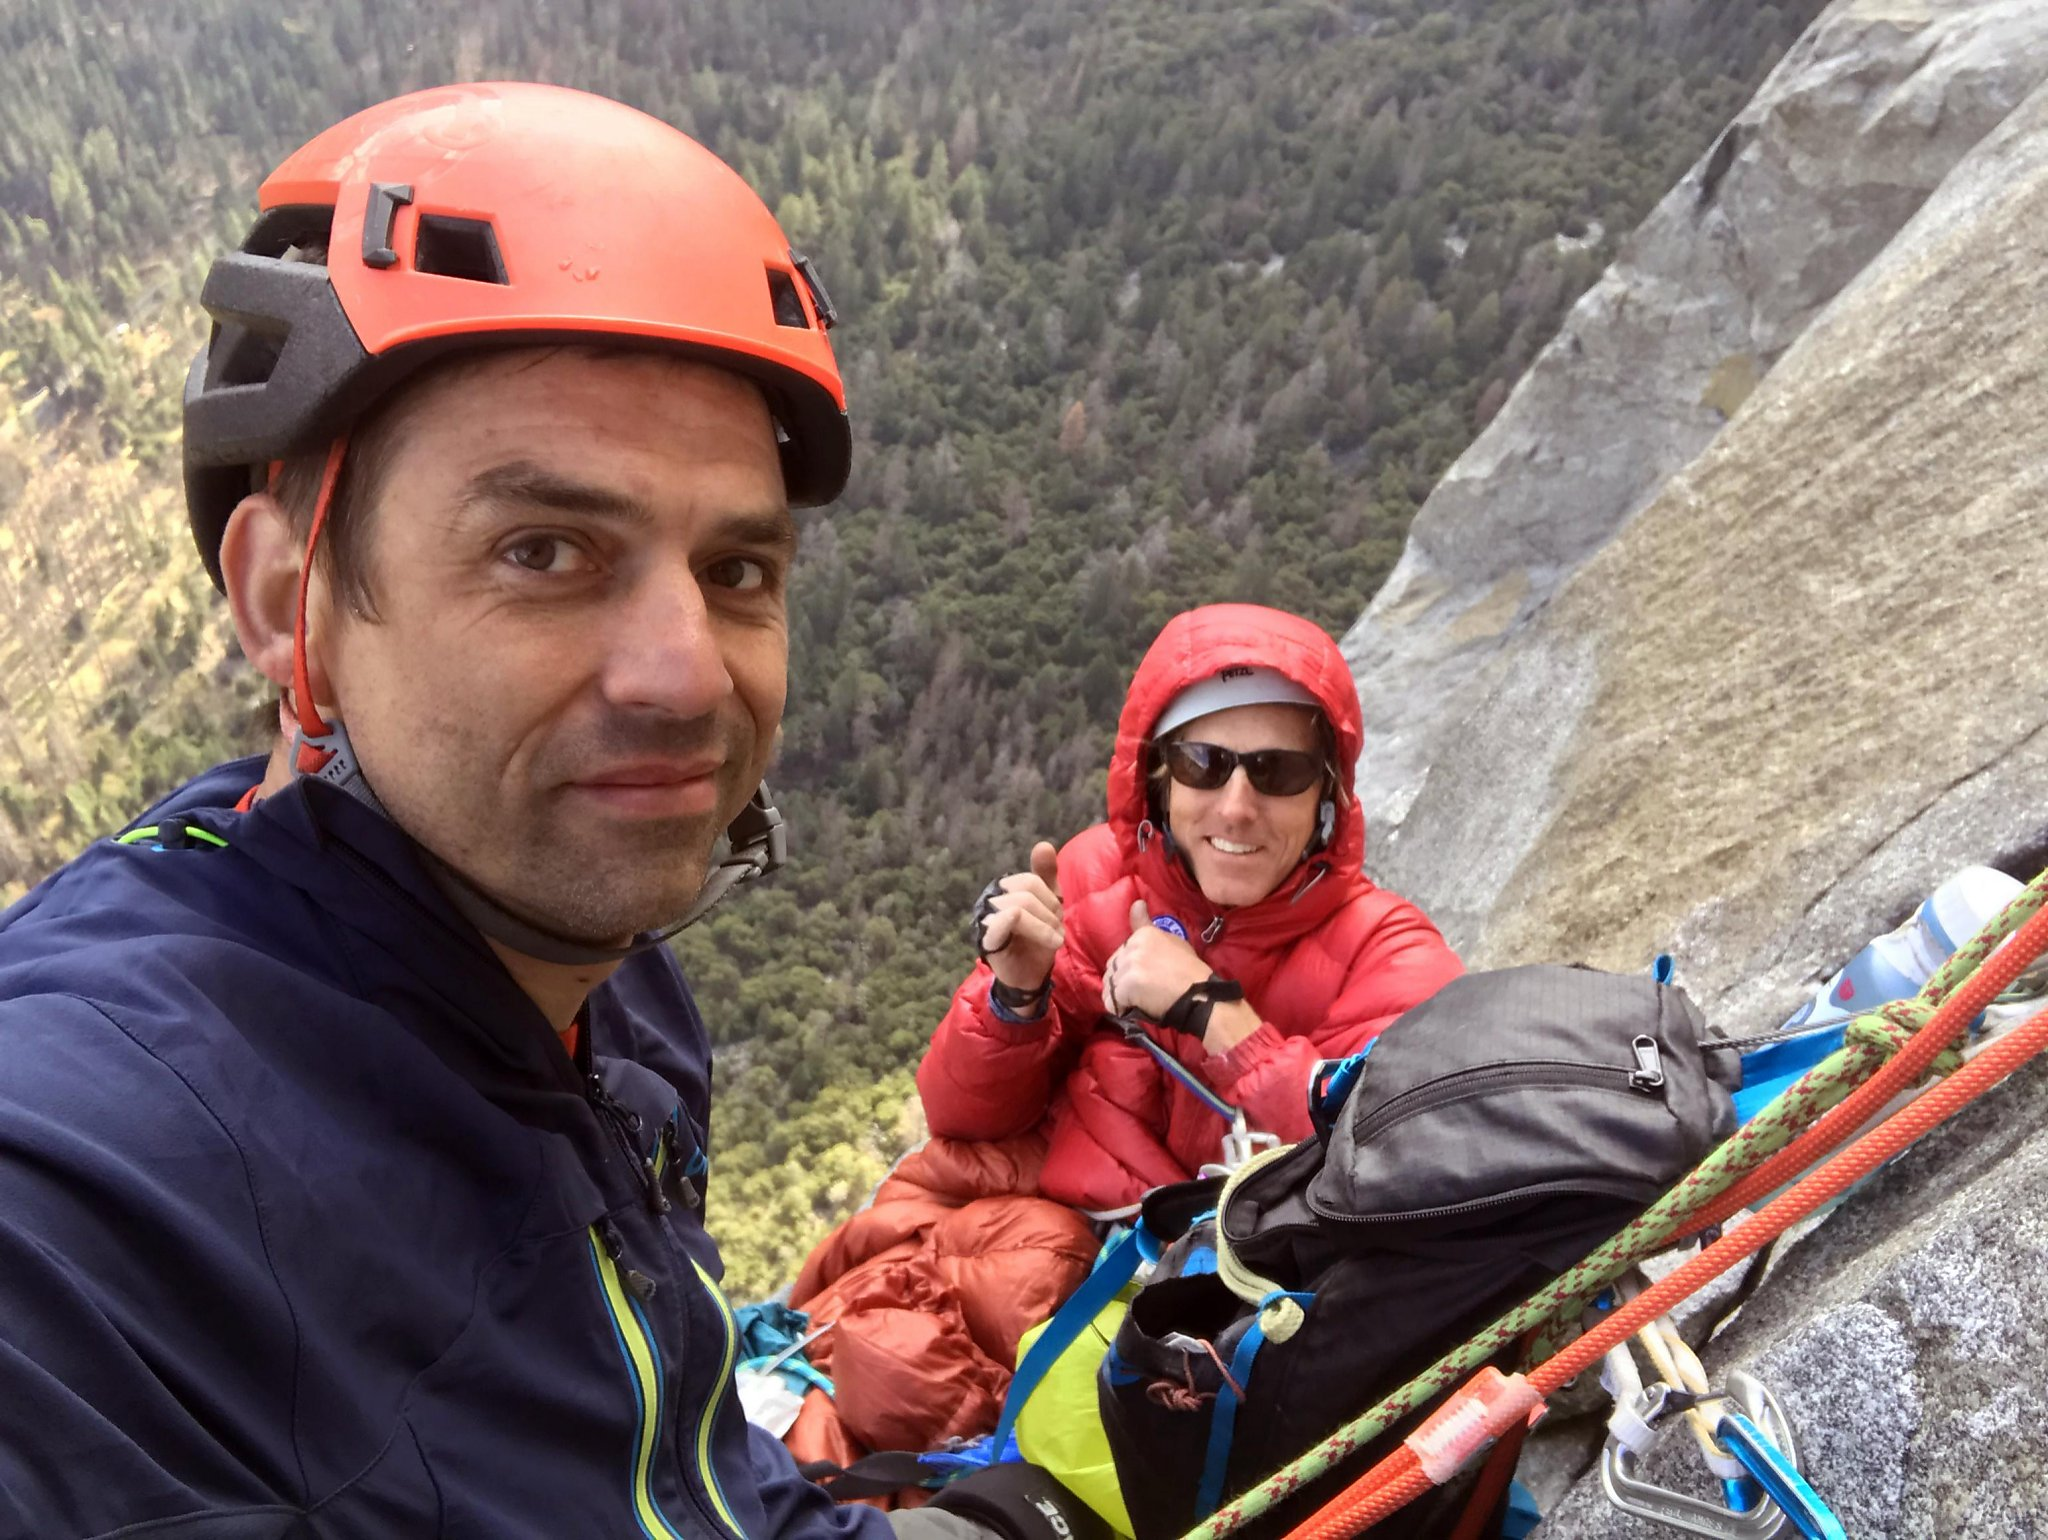 Witness to death plunge of 2 climbers on El Capitan